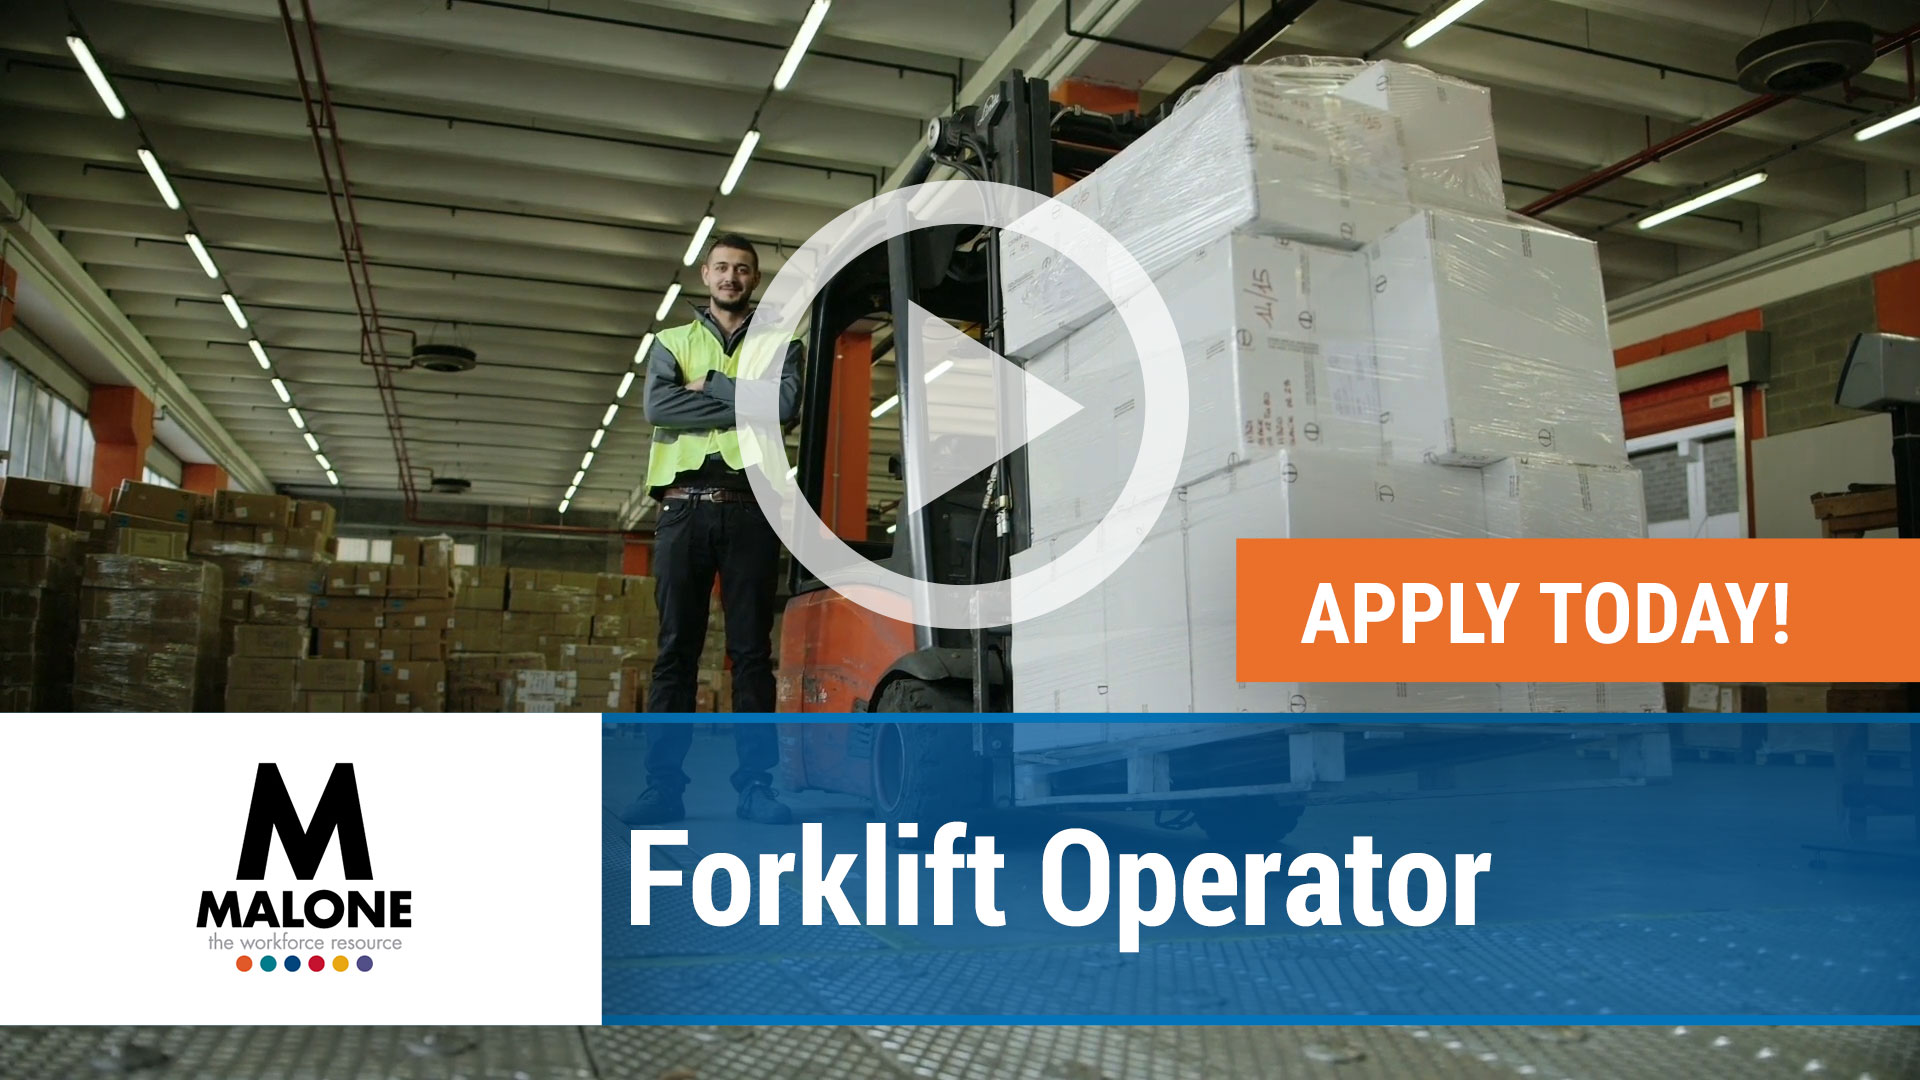 Watch our careers video for available job opening Forklift Operator in Joliet, Illinois